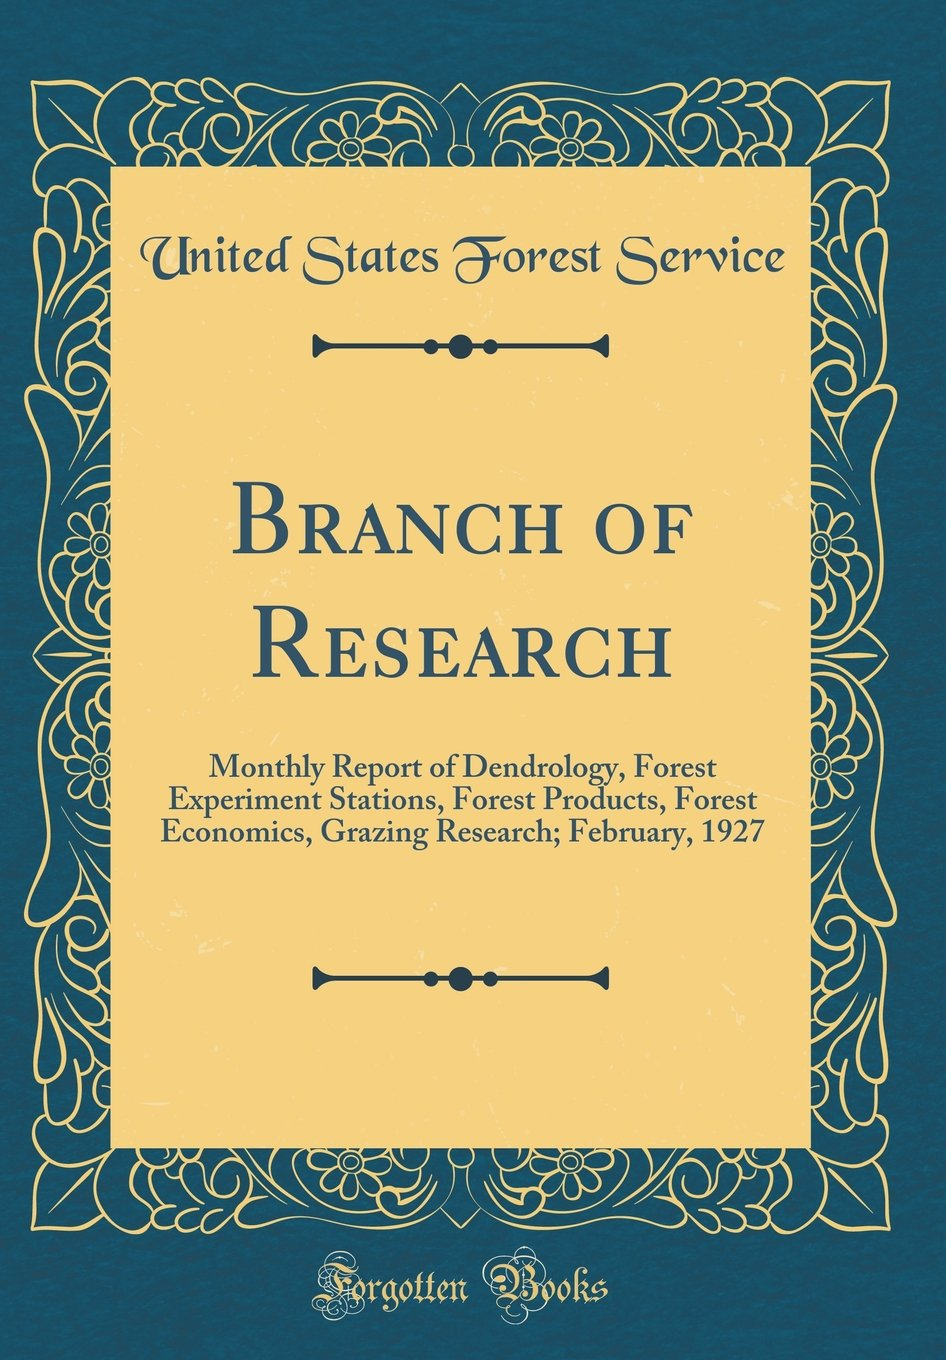 Download Branch of Research: Monthly Report of Dendrology, Forest Experiment Stations, Forest Products, Forest Economics, Grazing Research; February, 1927 (Classic Reprint) PDF